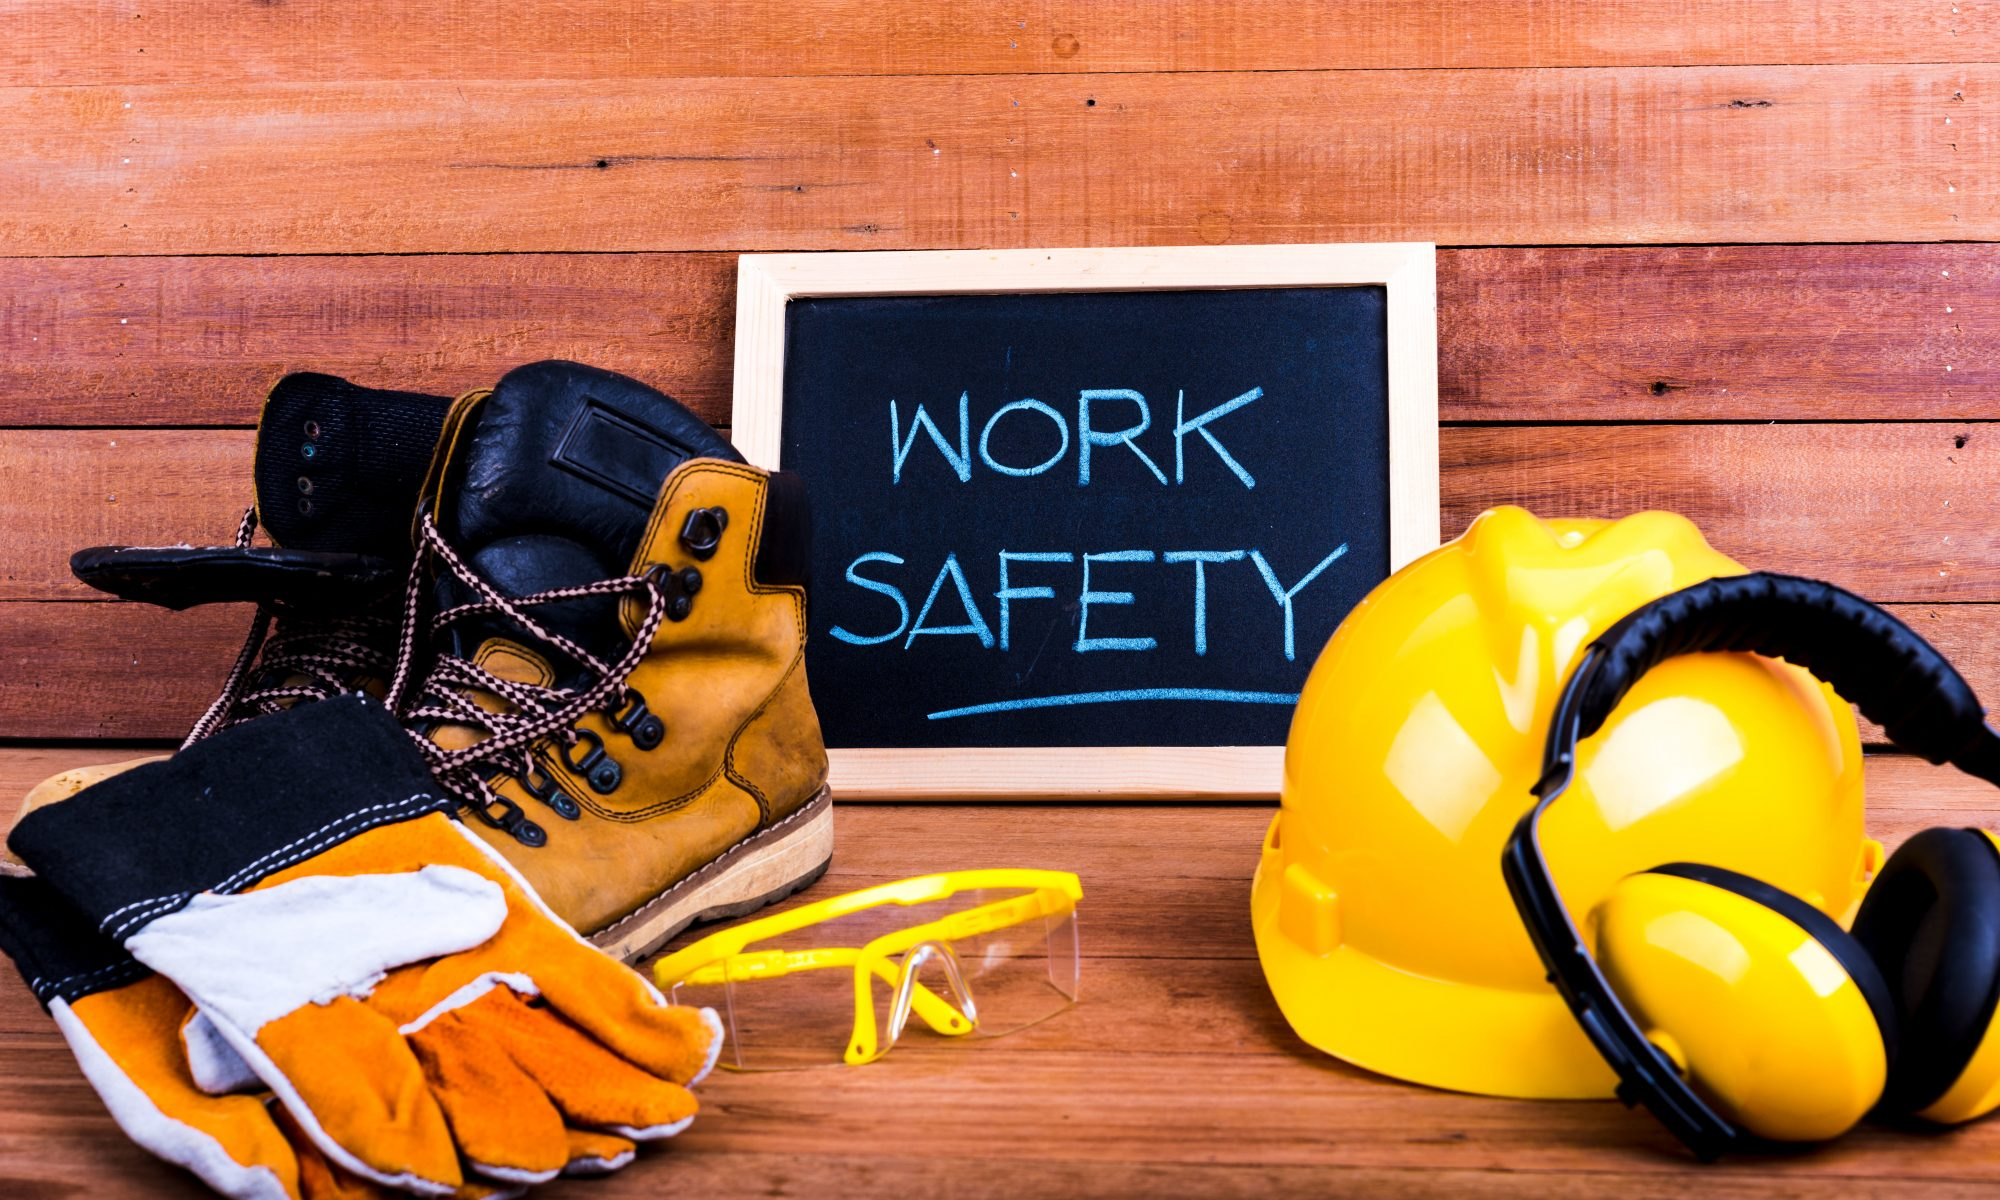 """gloves, work boots, safety goggles, hard hat on a wood plank background w/ """"work safety"""" written on a framed chalkboard"""